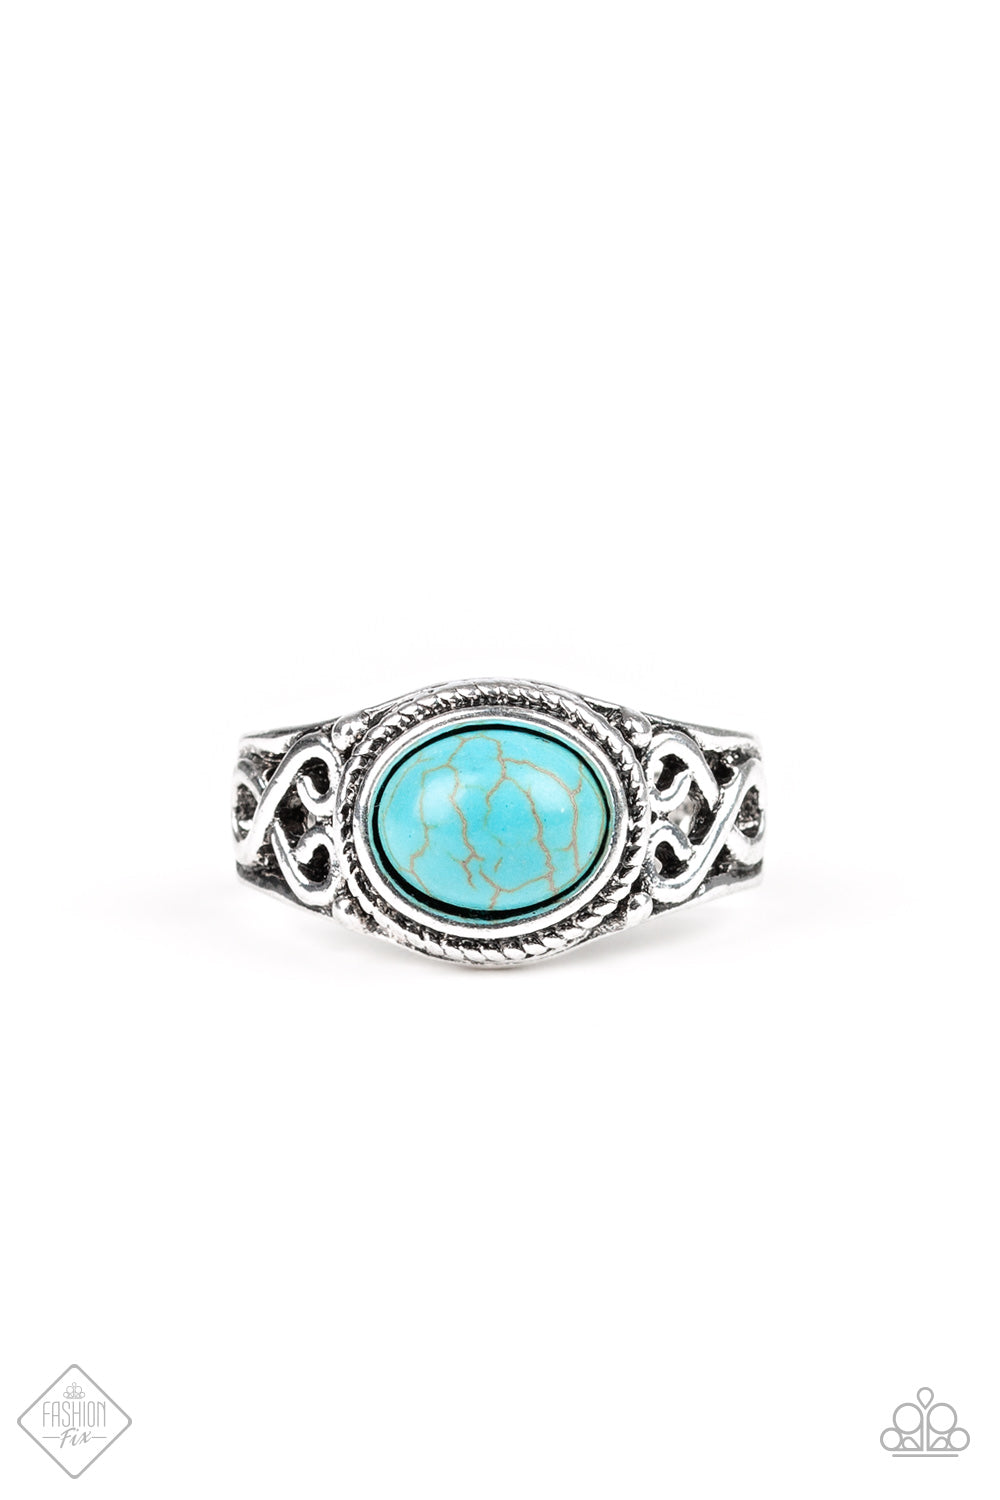 Paparazzi Set In Stone Blue Turquoise Ring Trend Blend Fashion Fix E